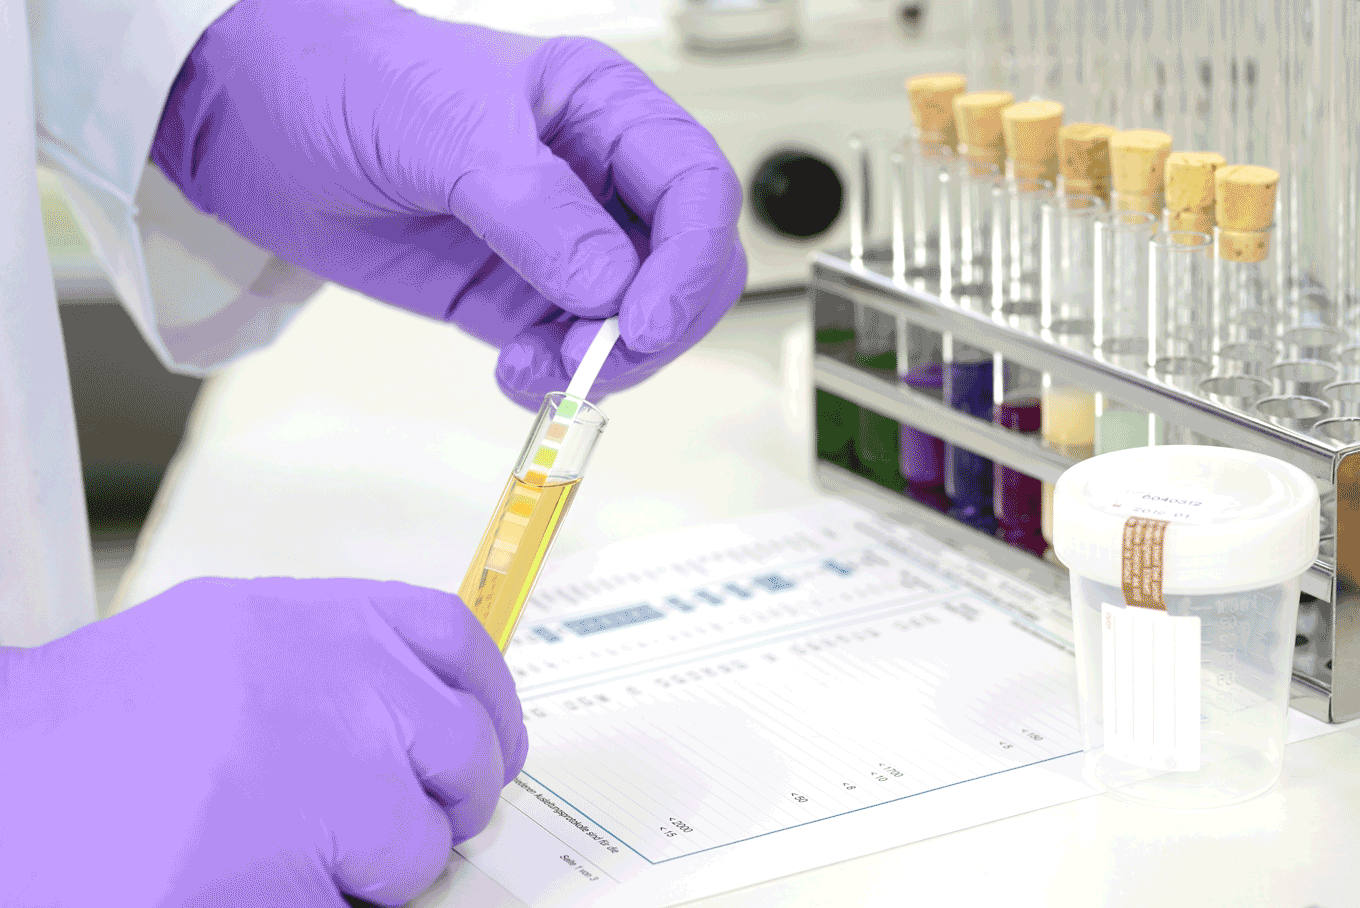 Bradley Screening LLC Drug Testing